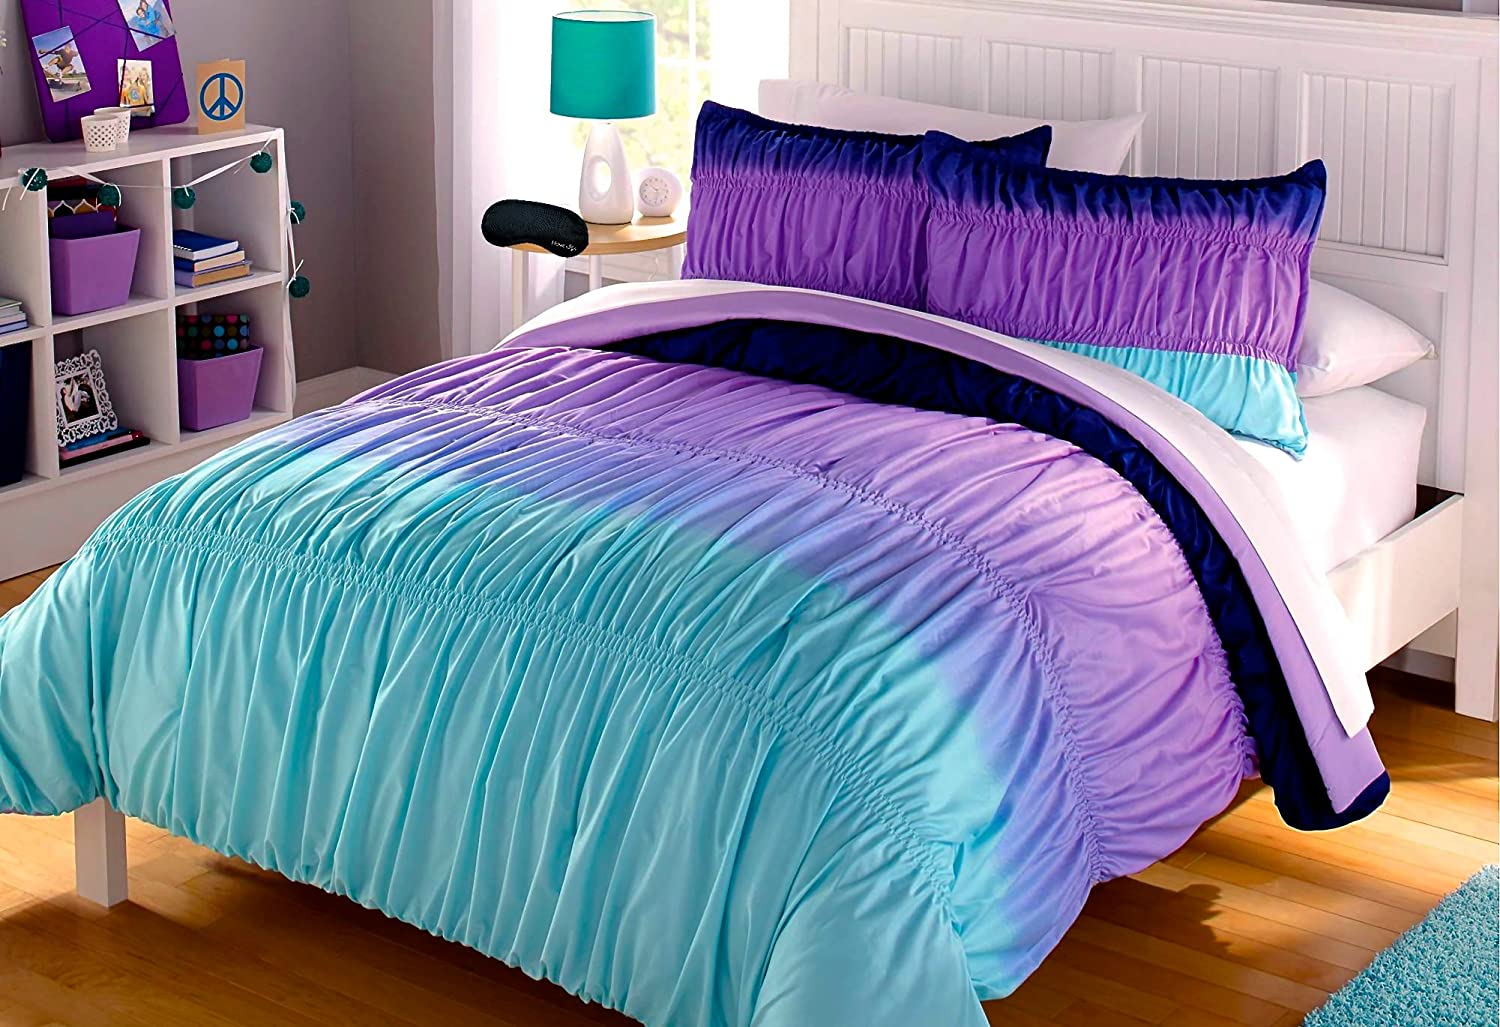 Tween Boys Bedroom Ideas Teen Boys And Teen Girls Bedding Sets Ease Bedding With